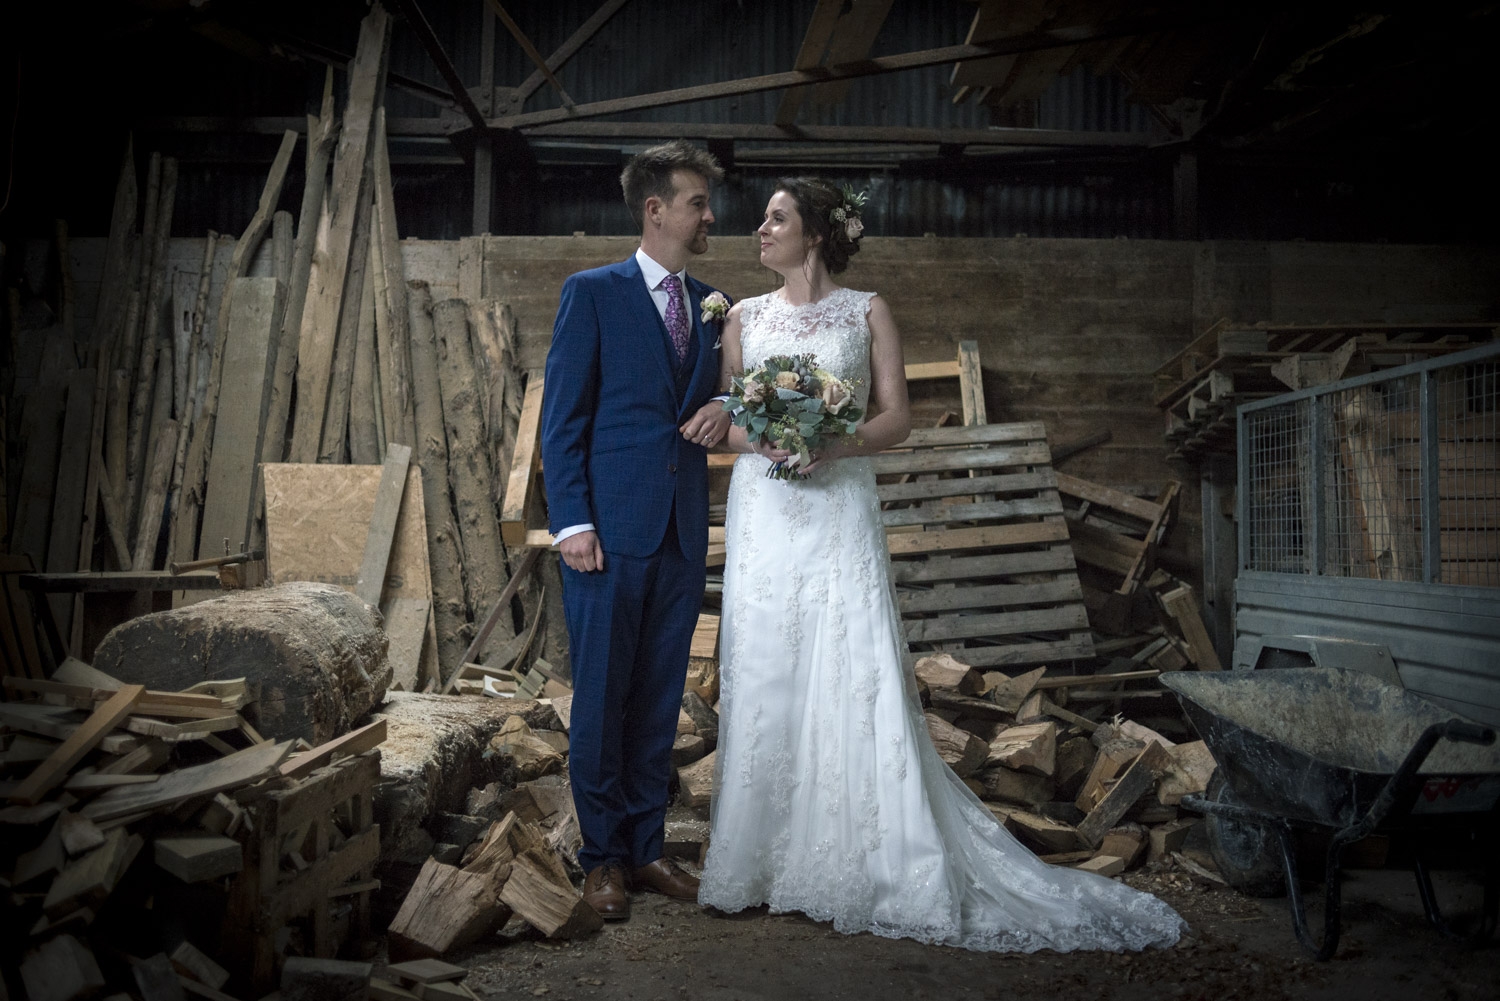 pangdean-barn-wedding-2.jpg